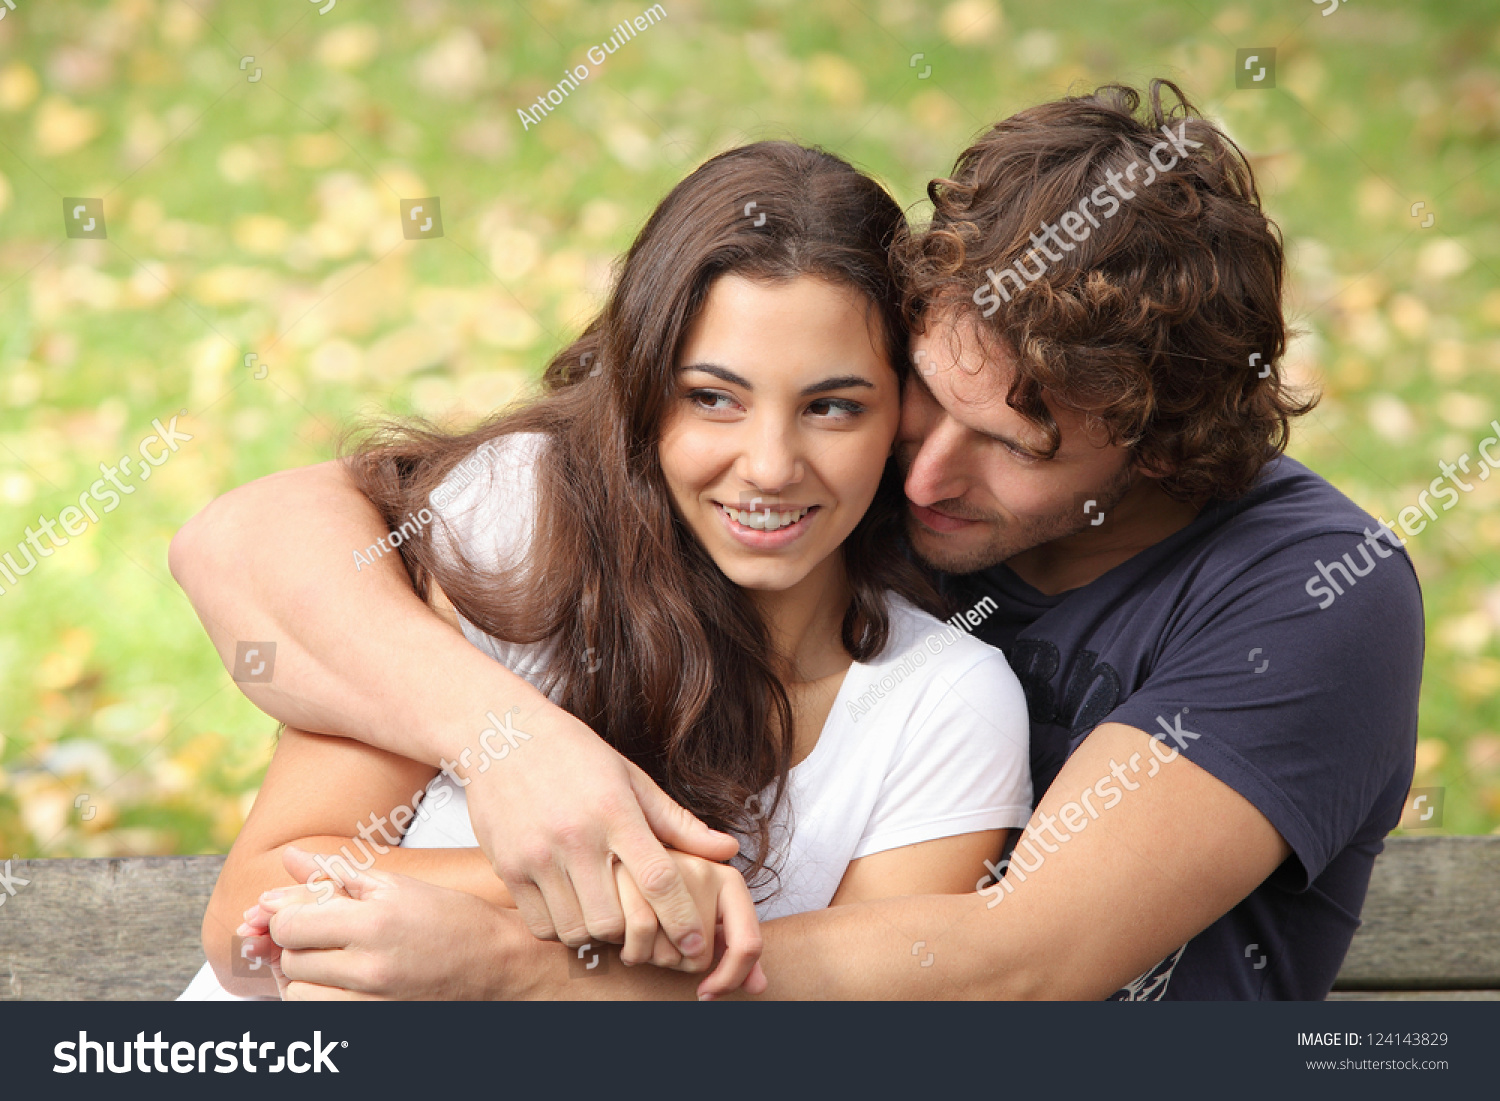 Pretty couple hugging and flirting in an urban park sitting in a bench and  looking away. Pretty Couple Hugging Flirting Urban Park Stock Photo 124143829